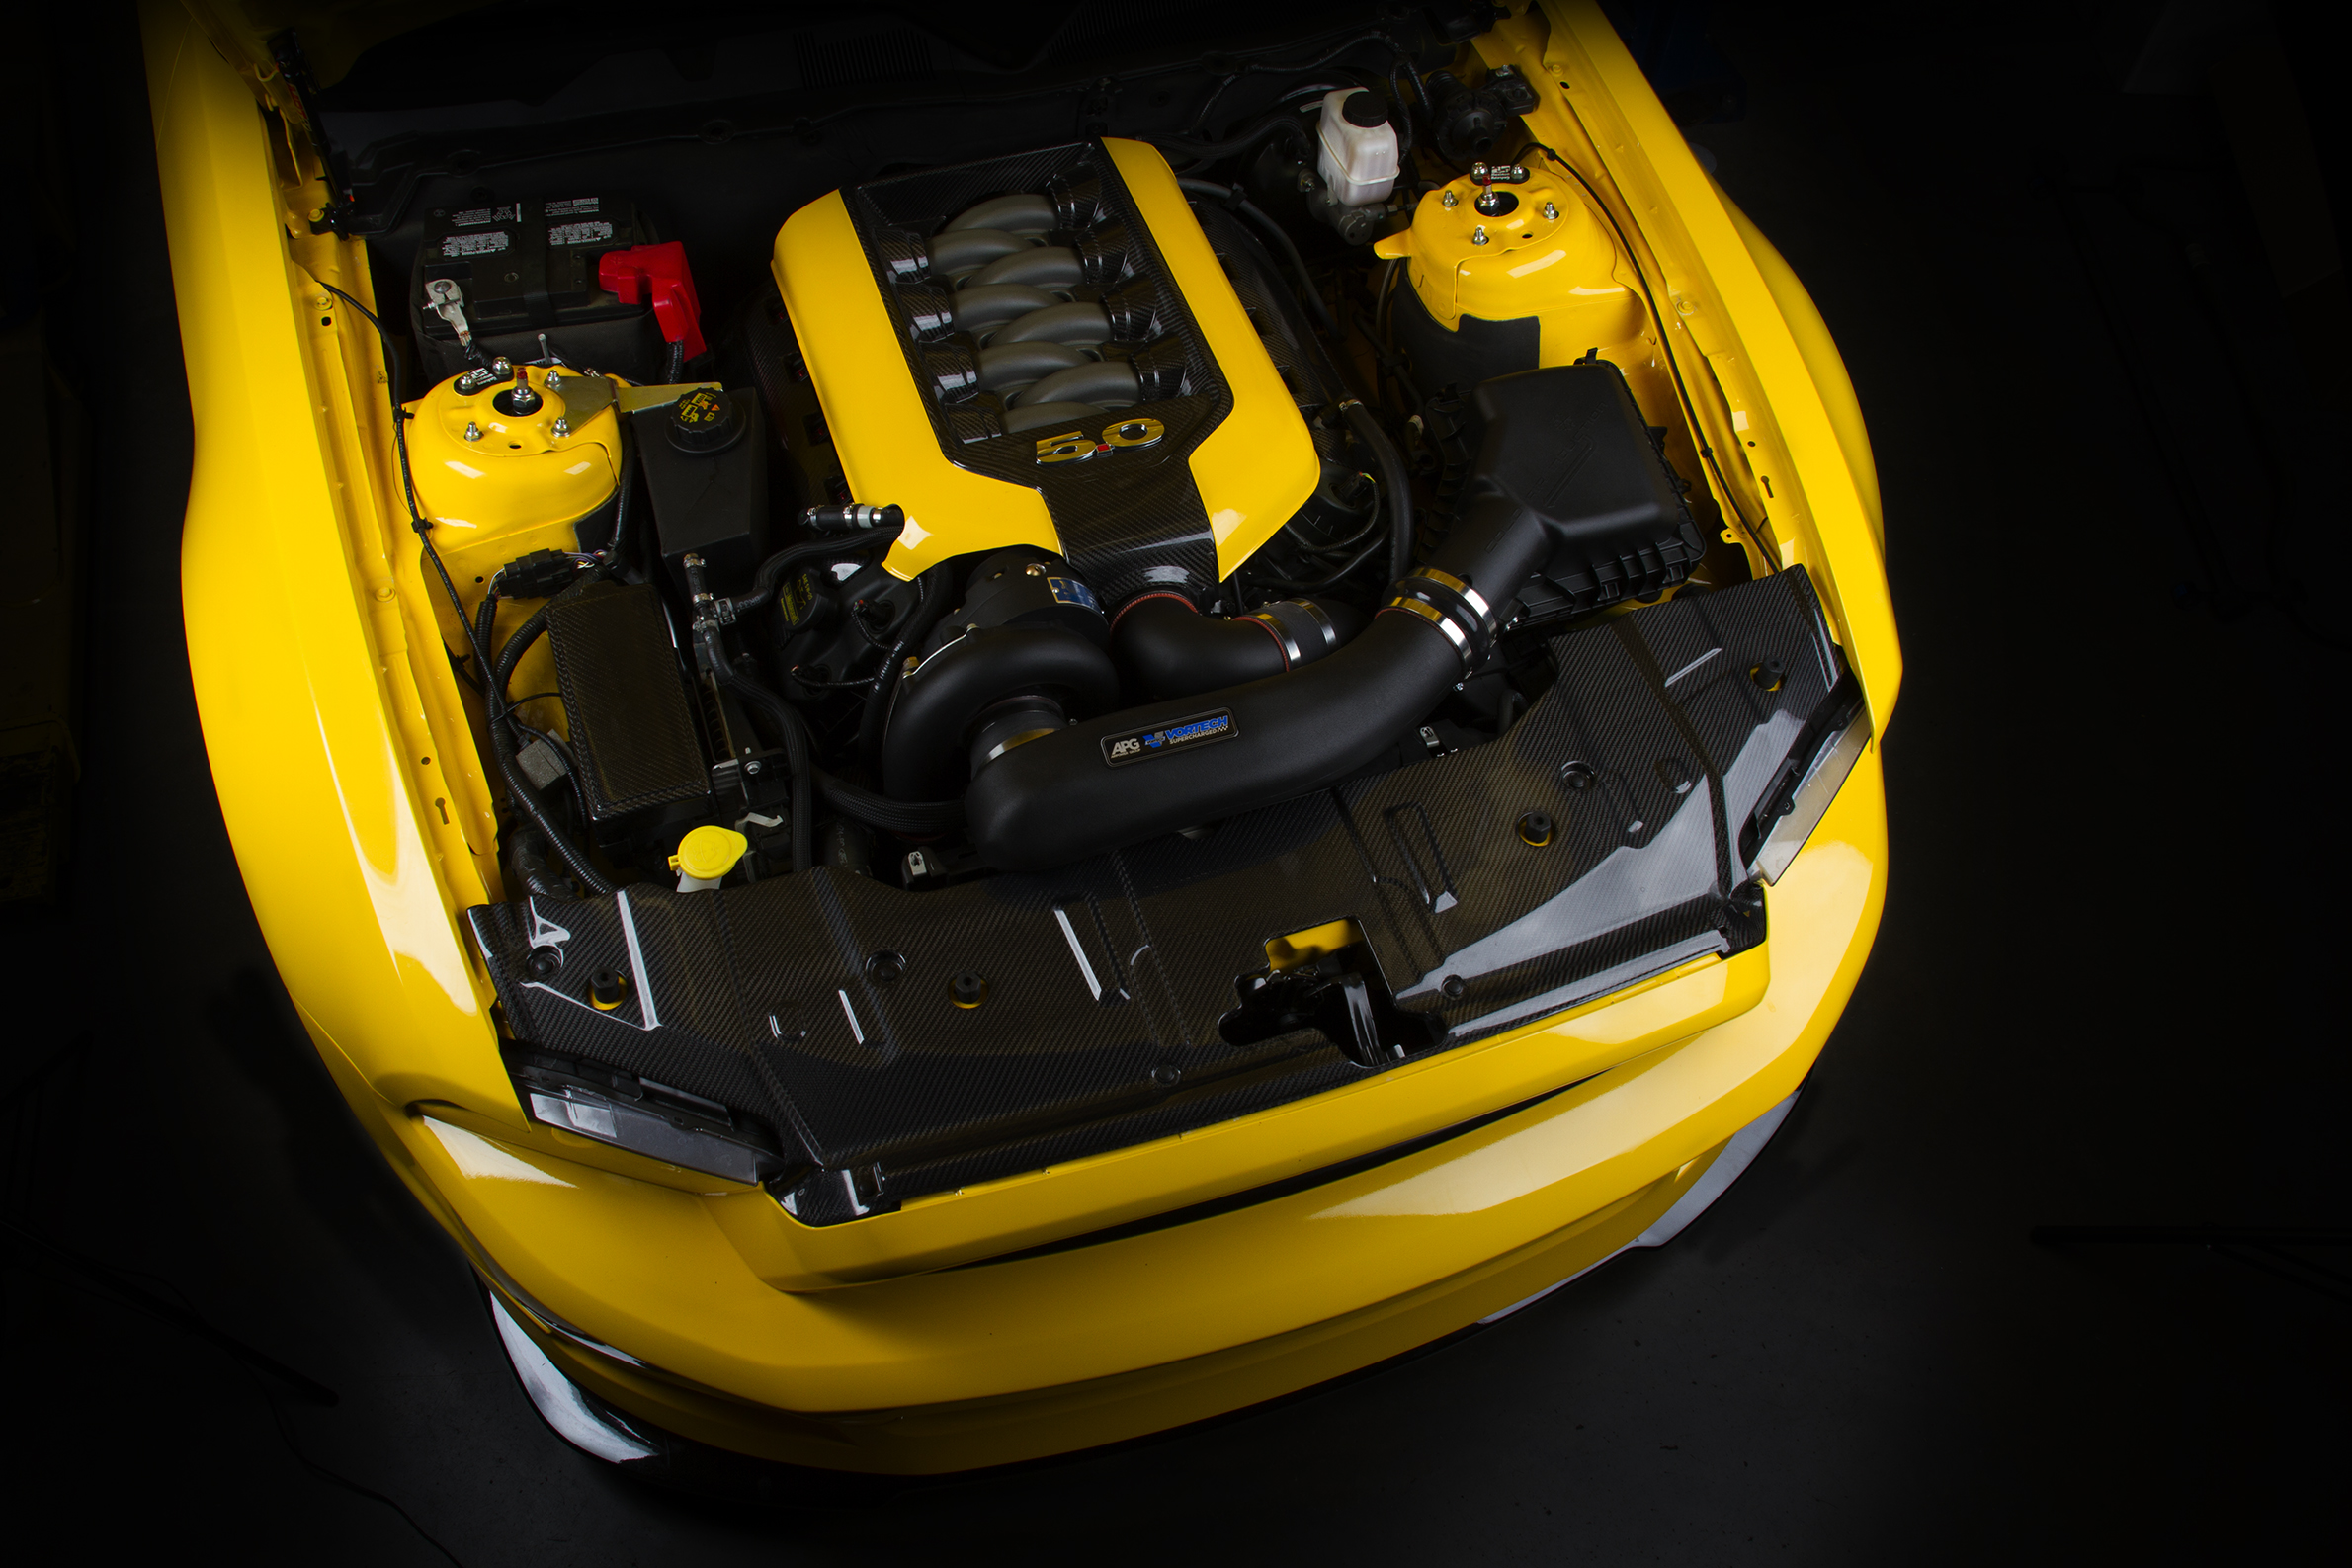 2014 5 0 S We Want You Vortech Superchargers Blog